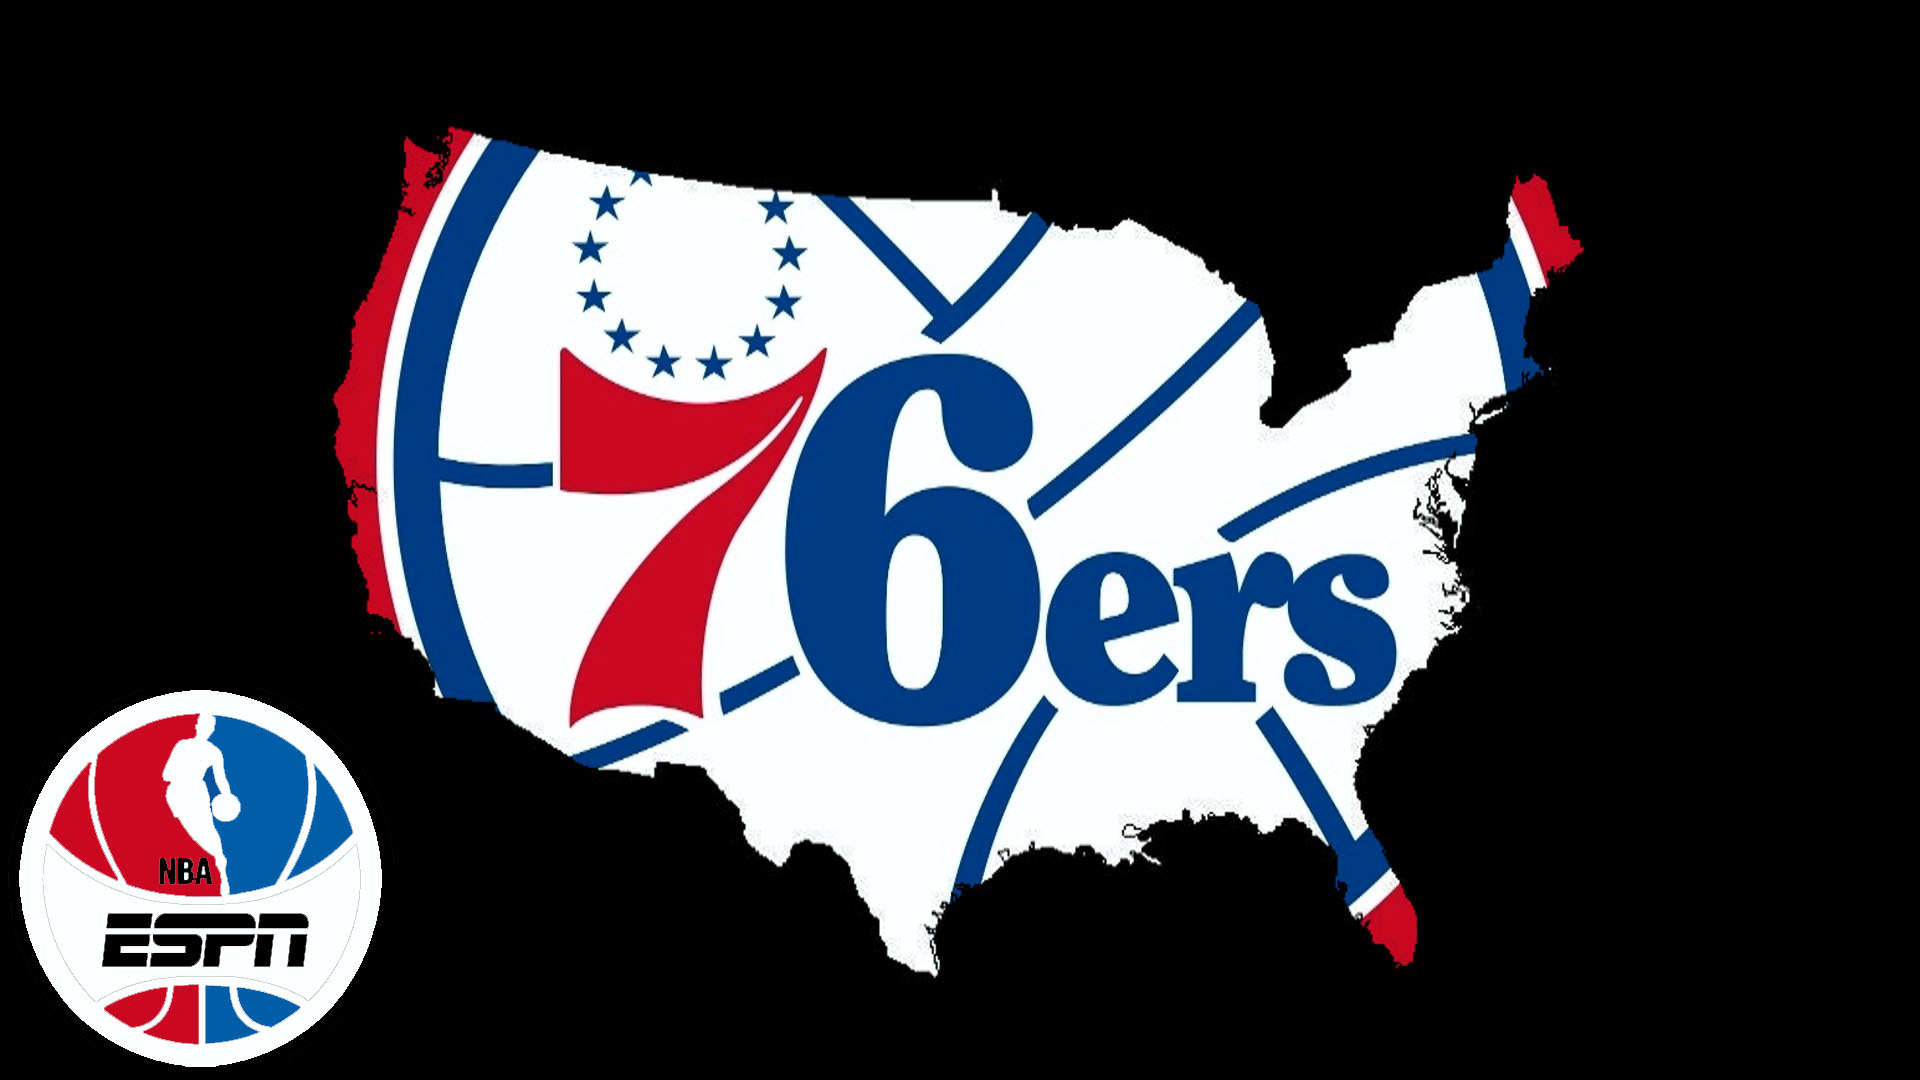 77 Sixers Wallpaper On Wallpapersafari